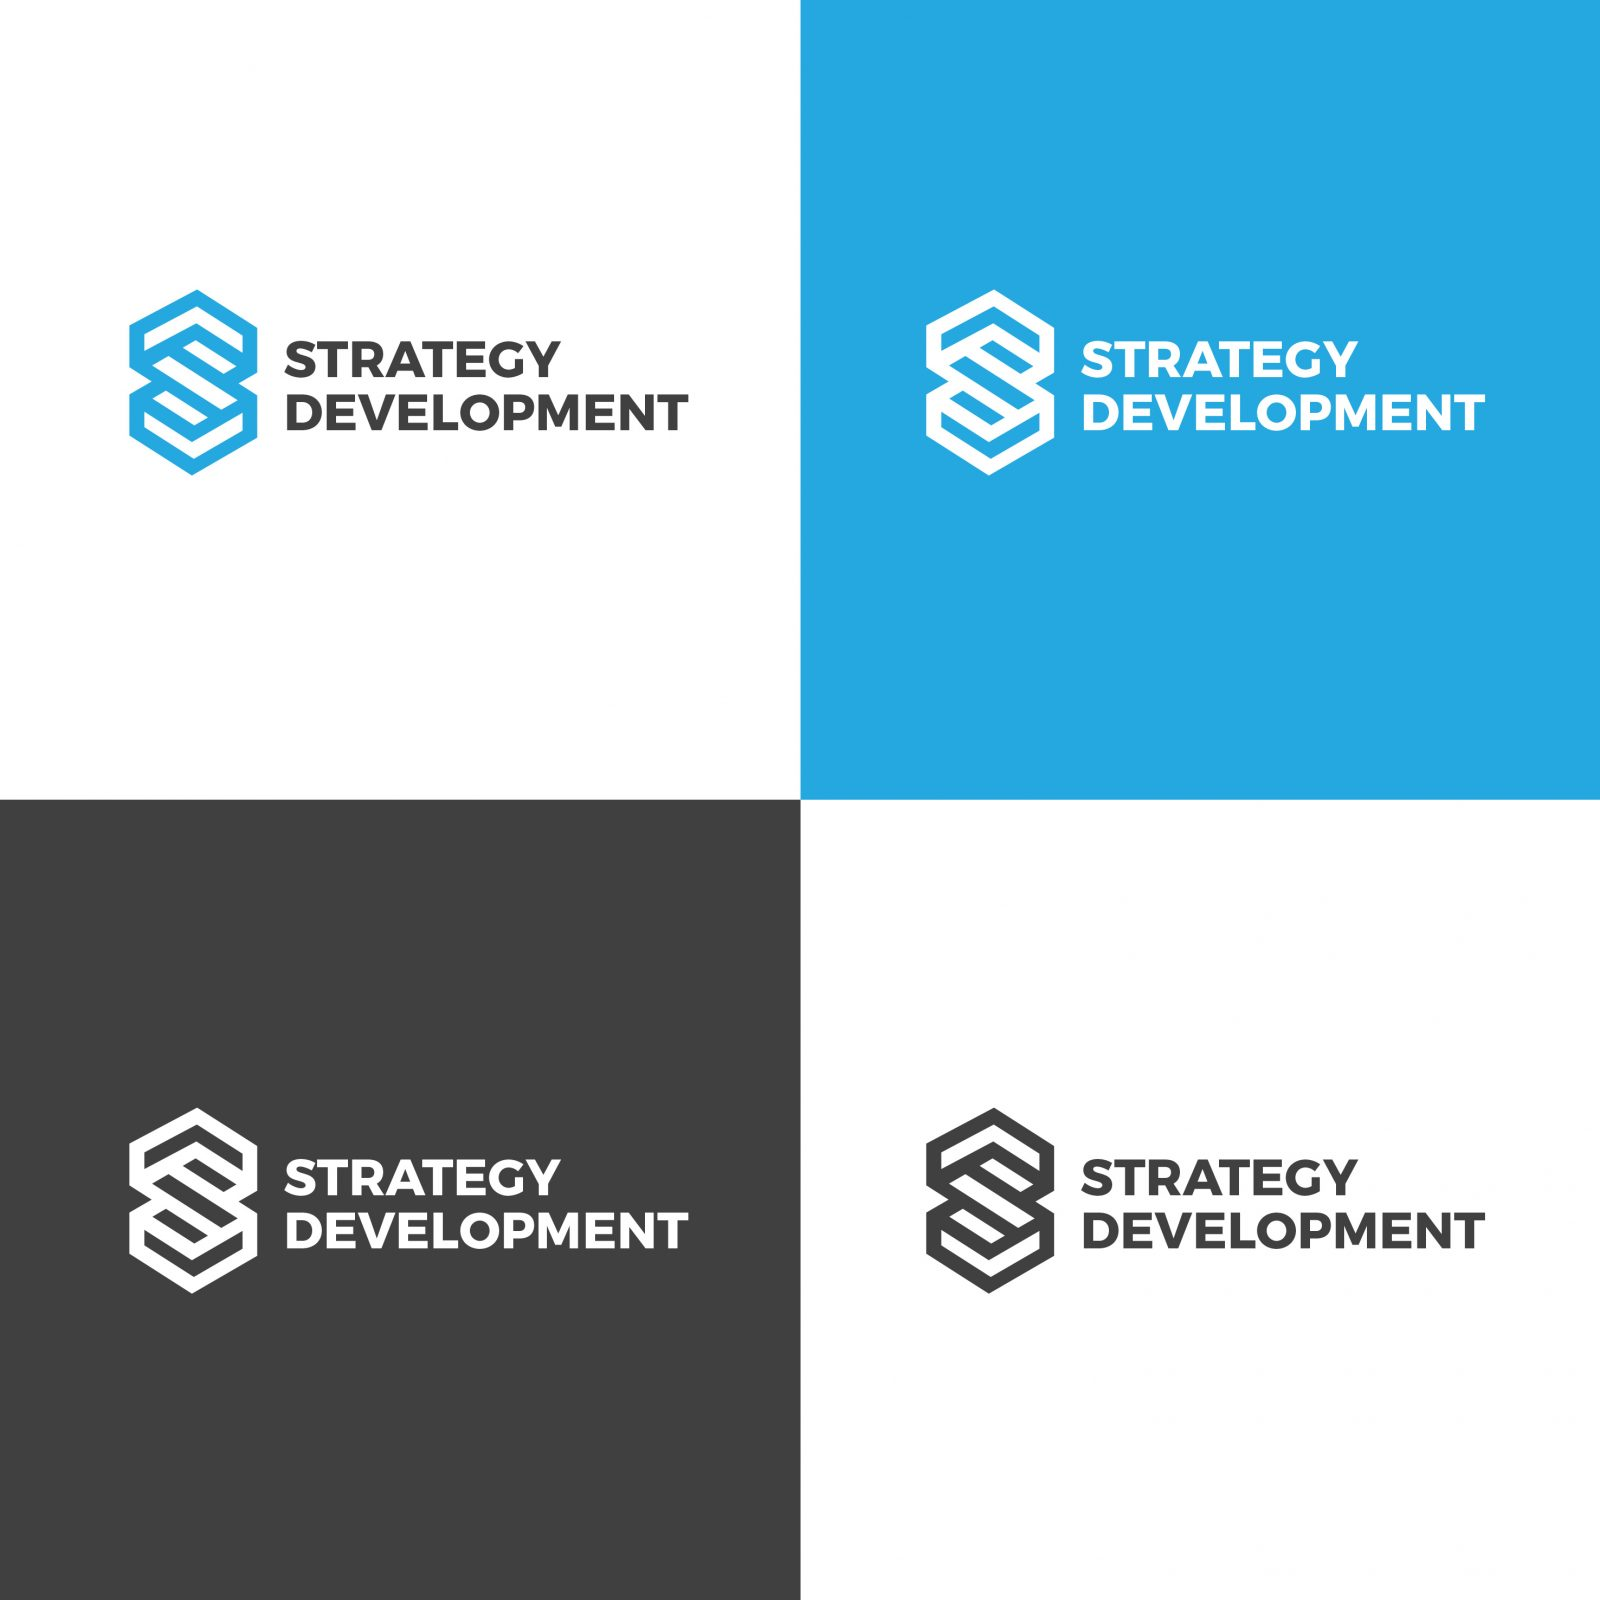 strategy creative logo design template 001887